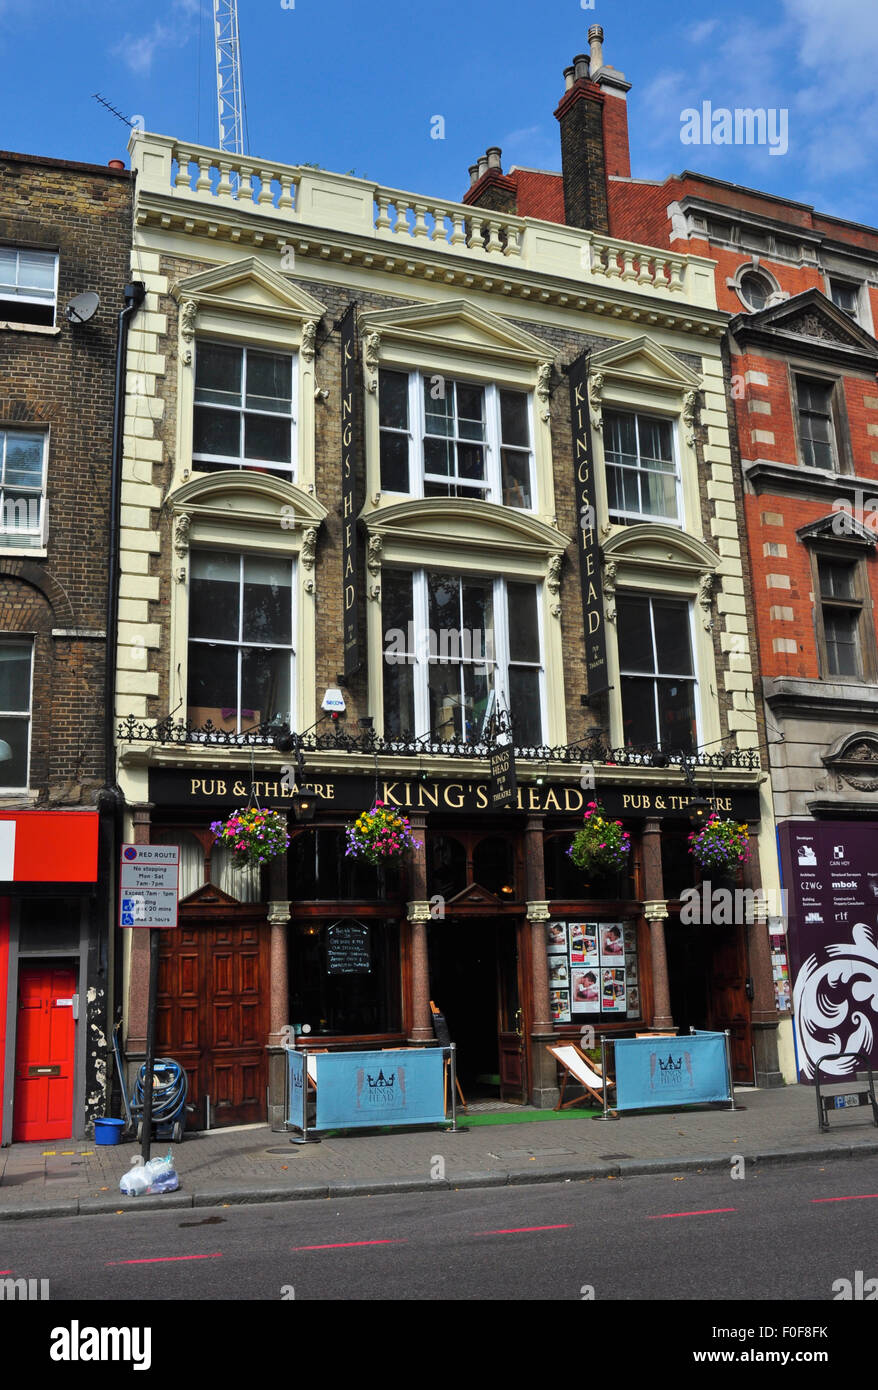 King's Head Theatre Pub, Upper Street, Islington, London, England, UK - Stock Image